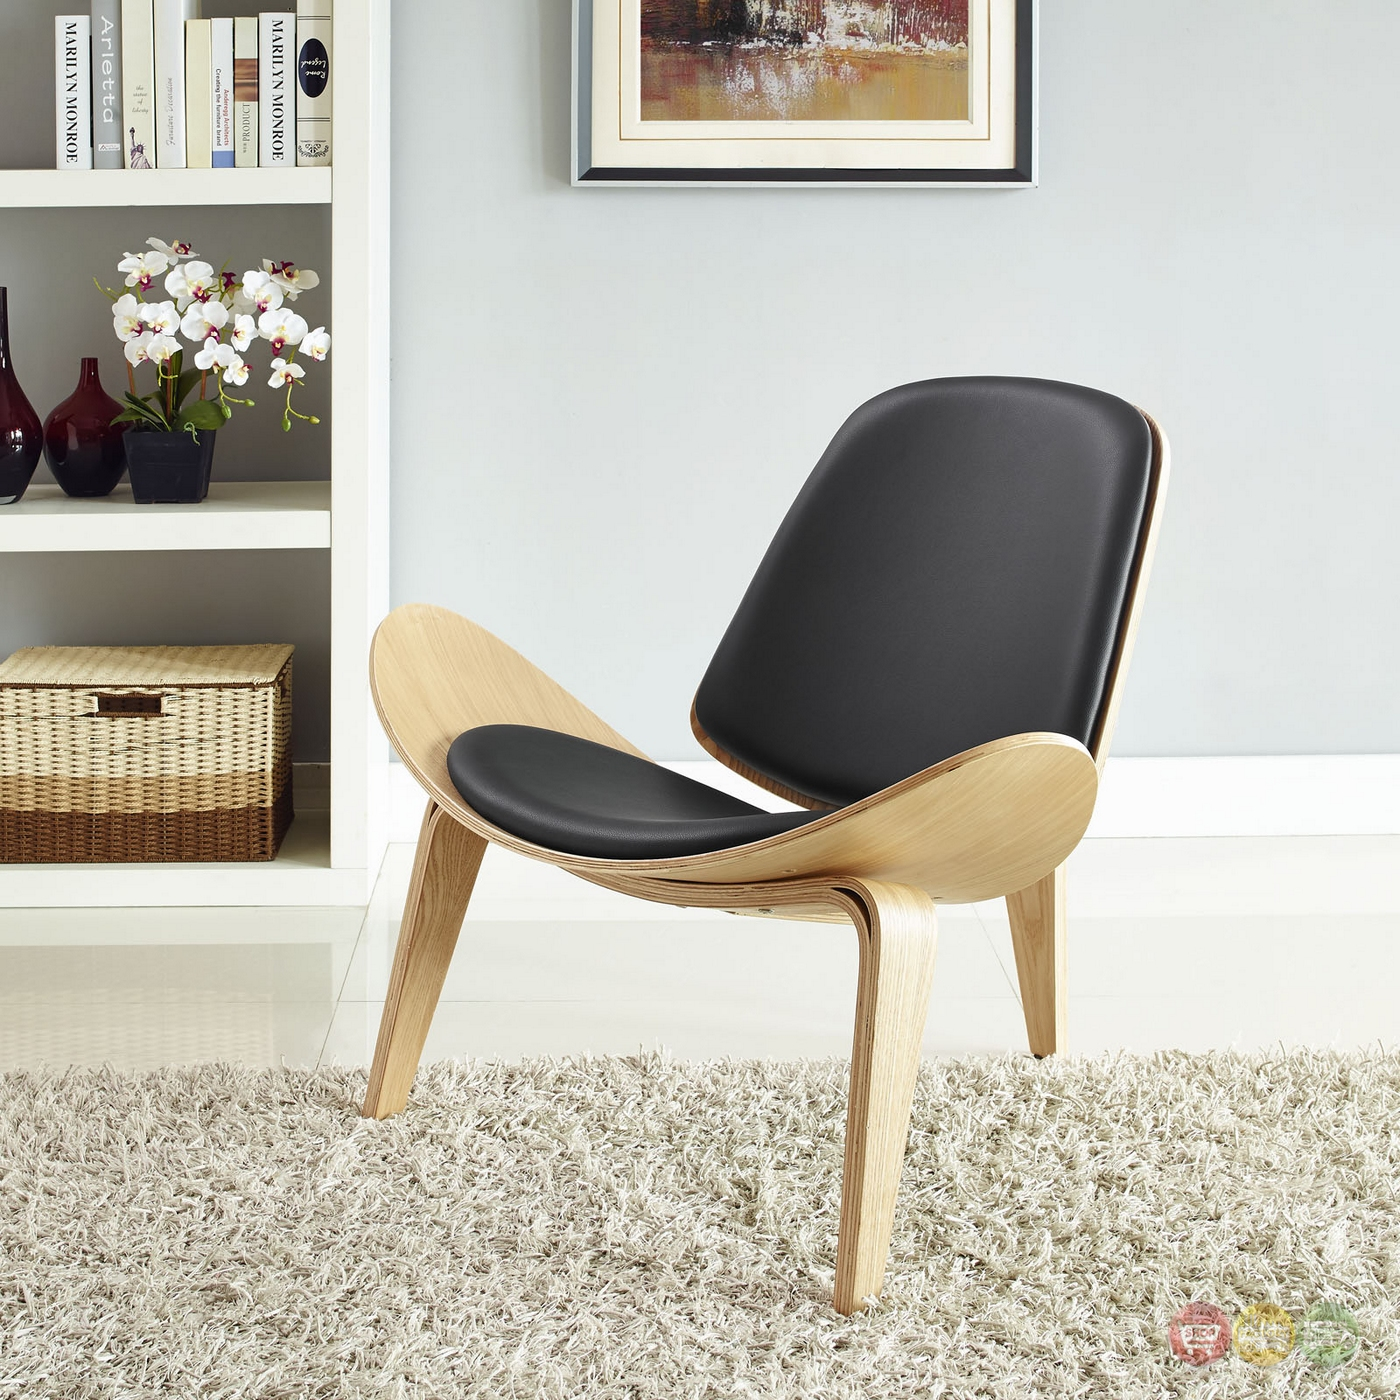 Arch Modernistic Lounge Chair Vinyl Padded Seat Oak Black. Full resolution‎  portraiture, nominally Width 1400 Height 1400 pixels, portraiture with #8D6F3E.